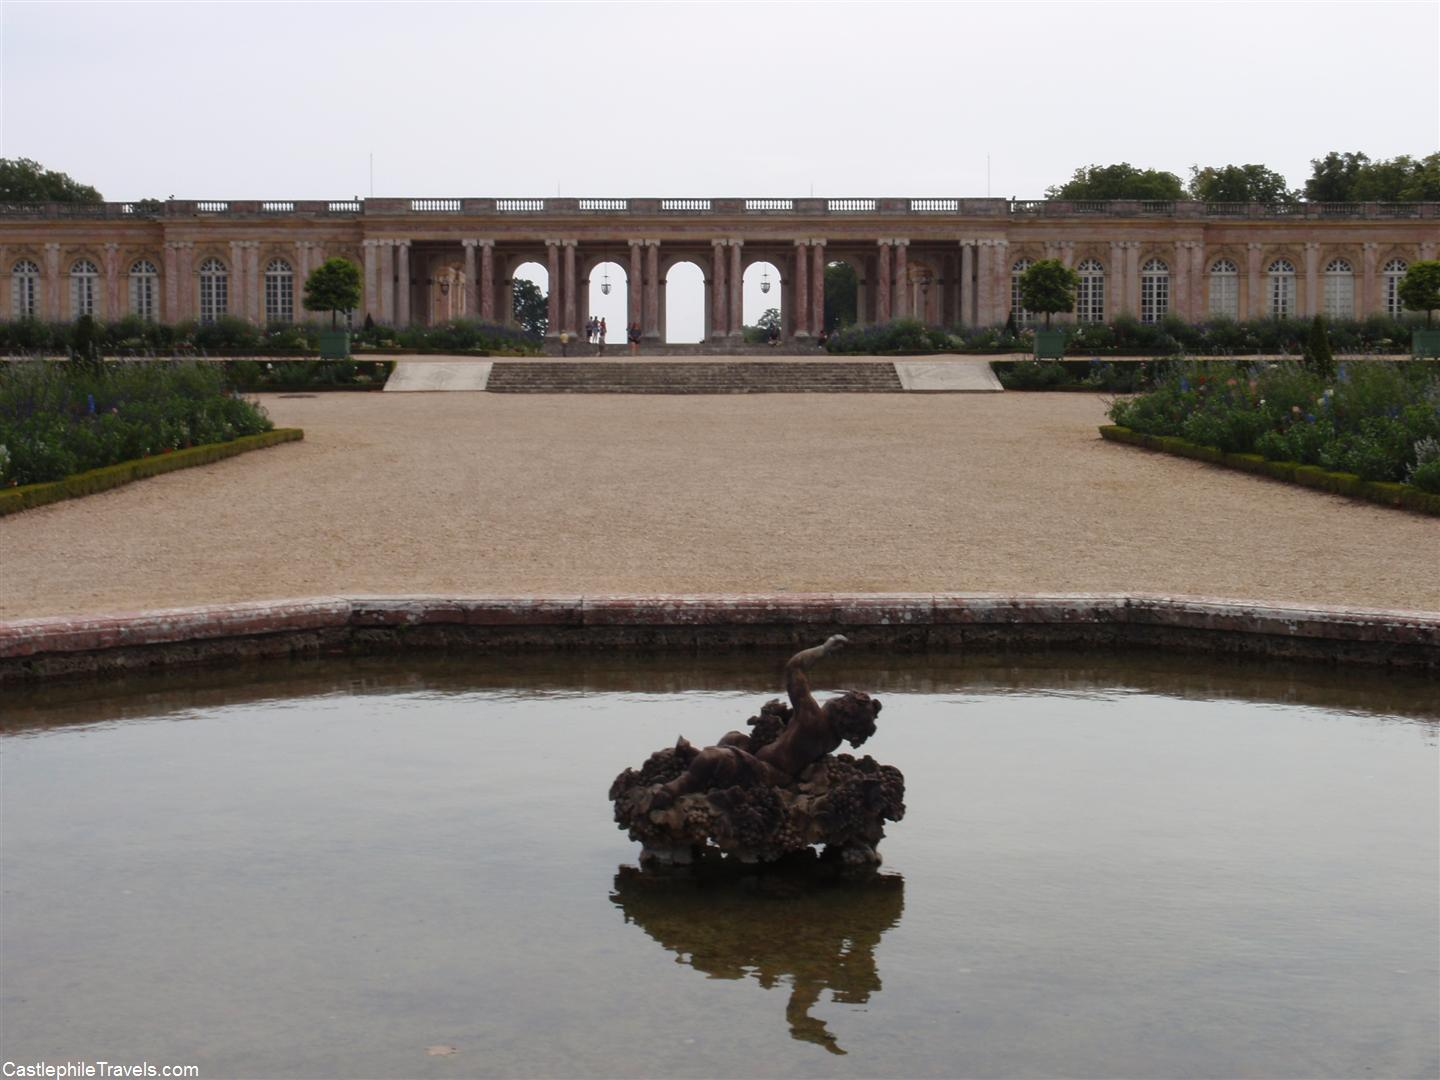 The portico and gardens of the Grand Trianon